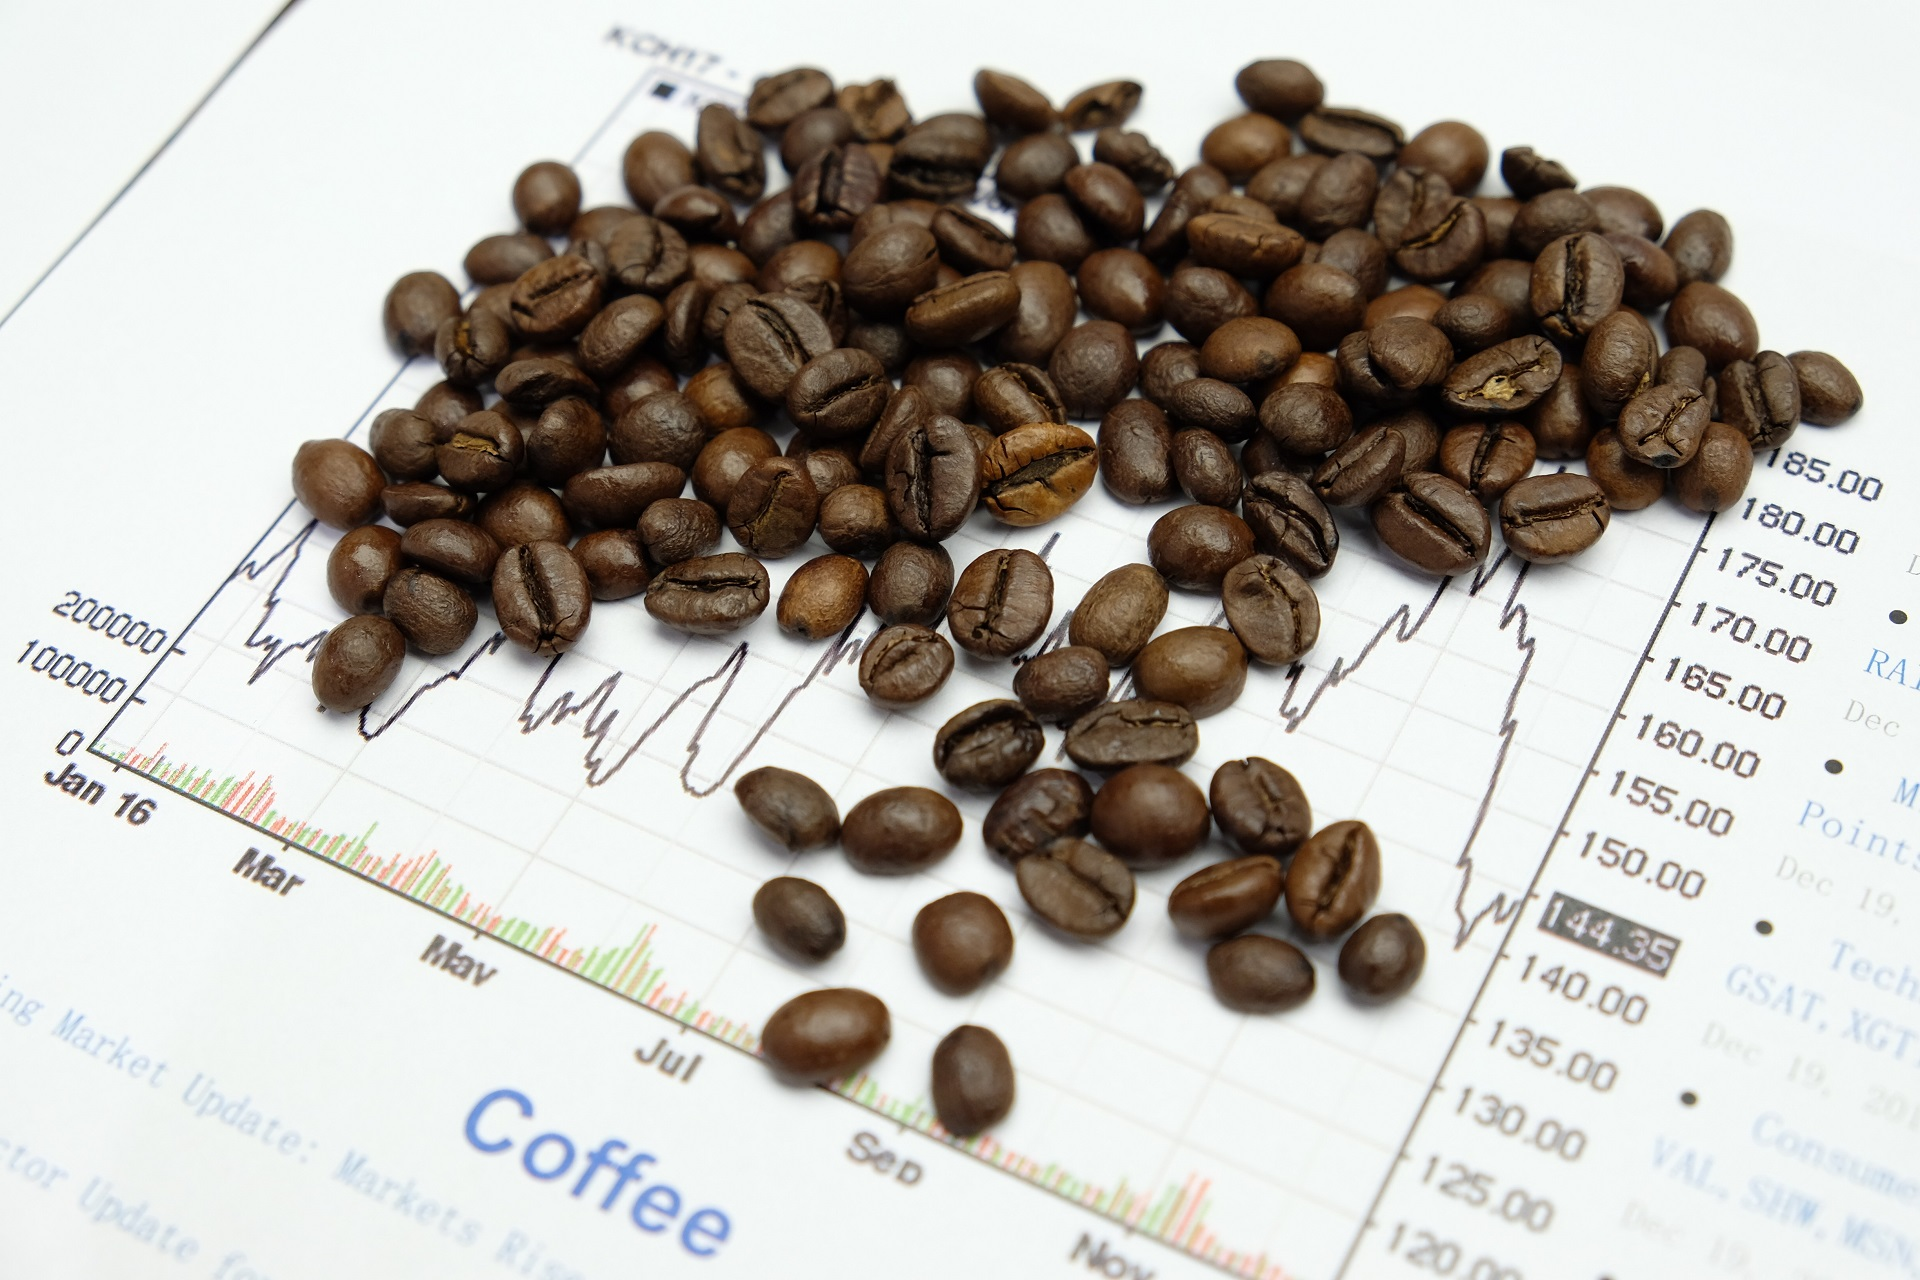 Agricultural Analysts Urge to Abandon Tracking Cryptos for Now to Watch Coffee Futures' Space Flight